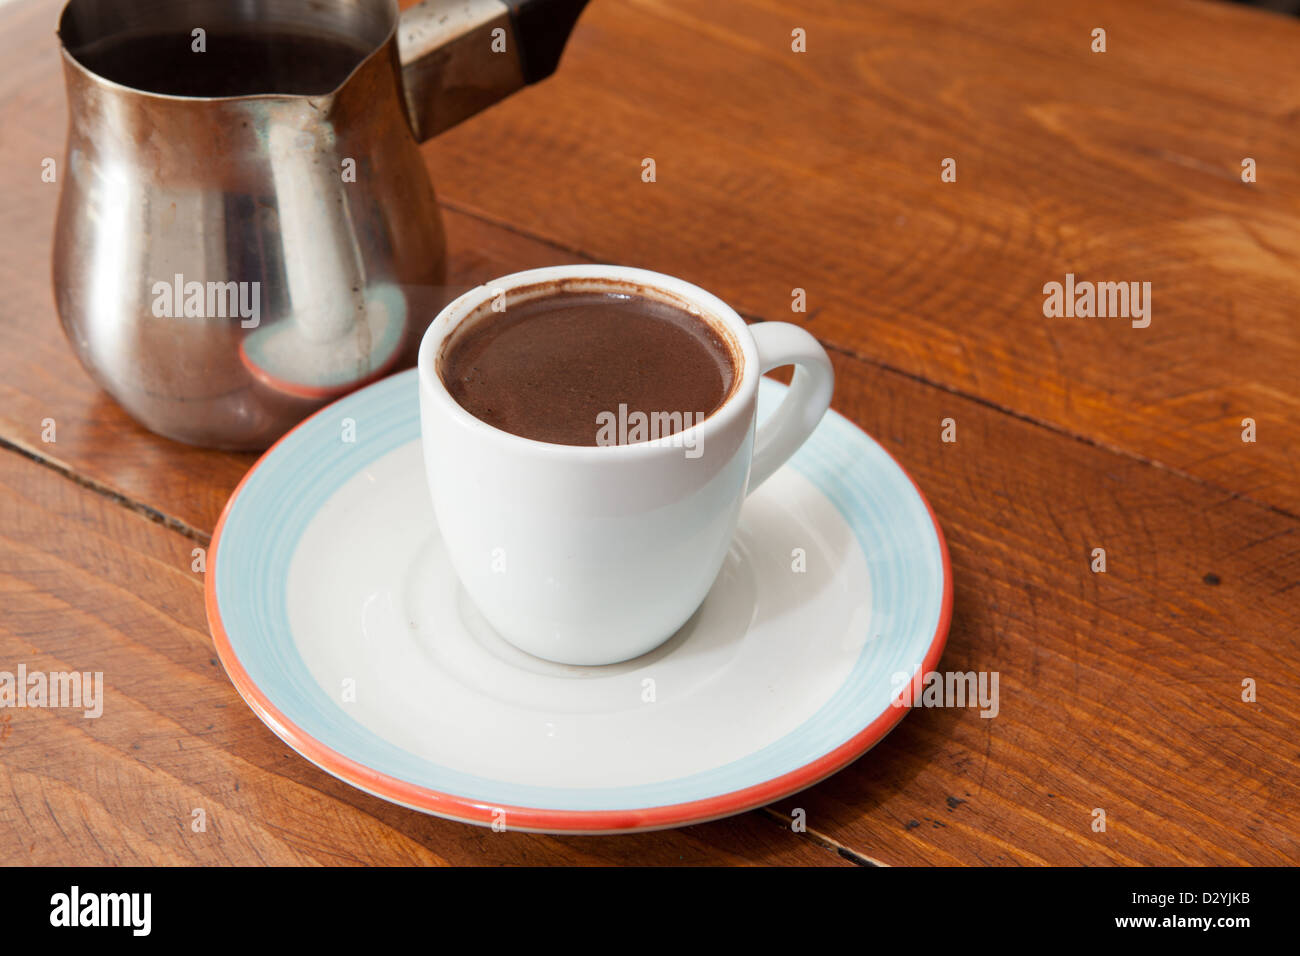 Demitasse cup of rich and robust Turkish or Arabic coffee served with metal carafe. - Stock Image